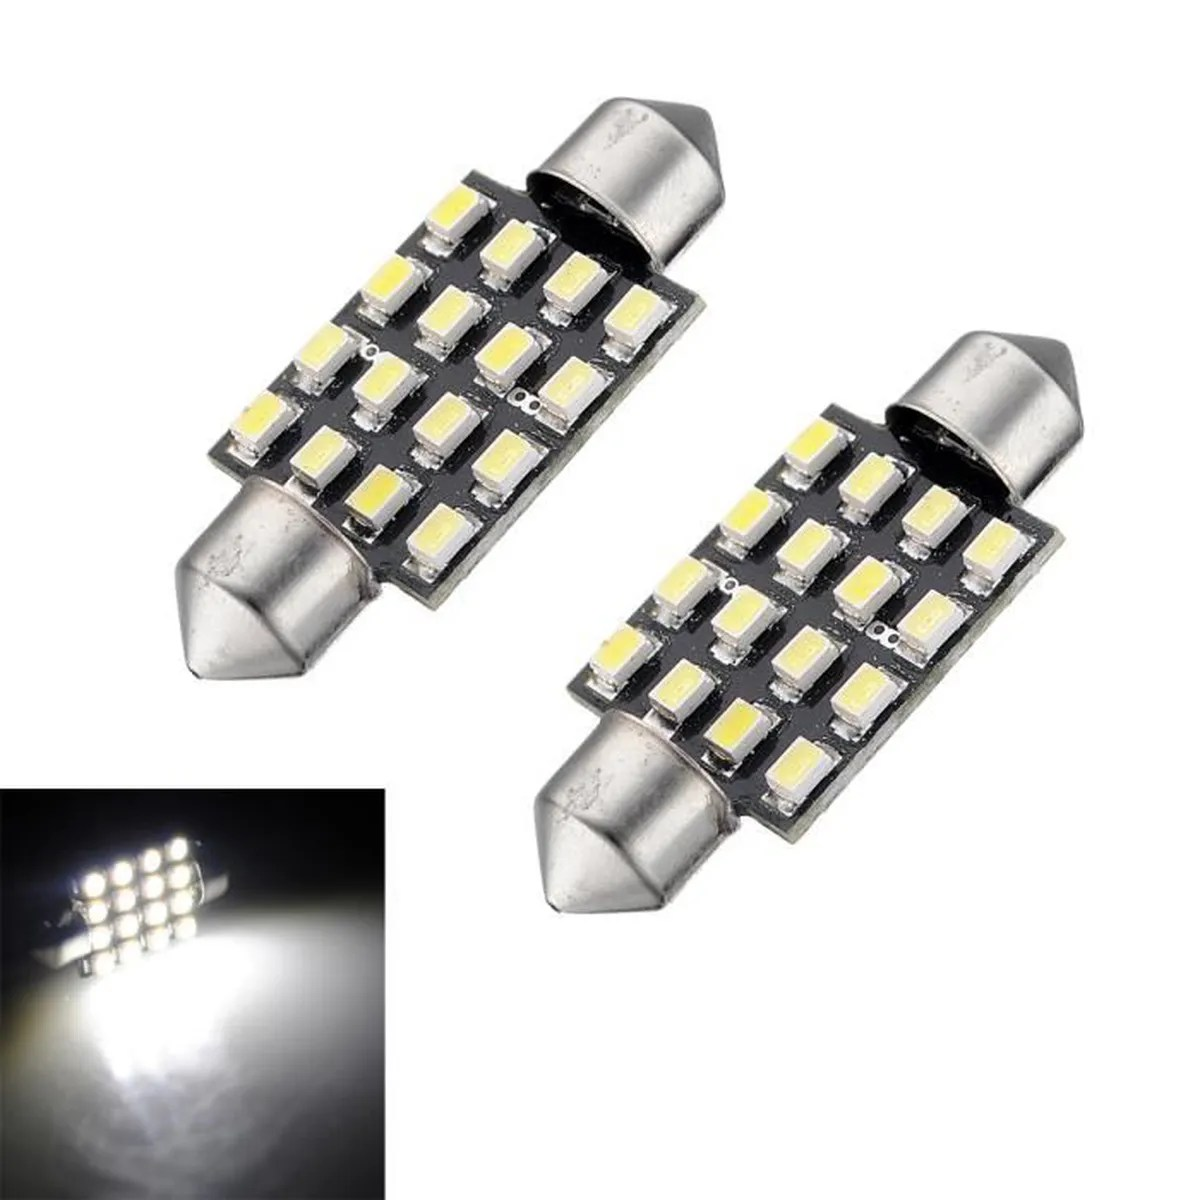 Eclairage Led 4x4 Eclairage Led Voiture Eclairage Led Voiture Achat Vente